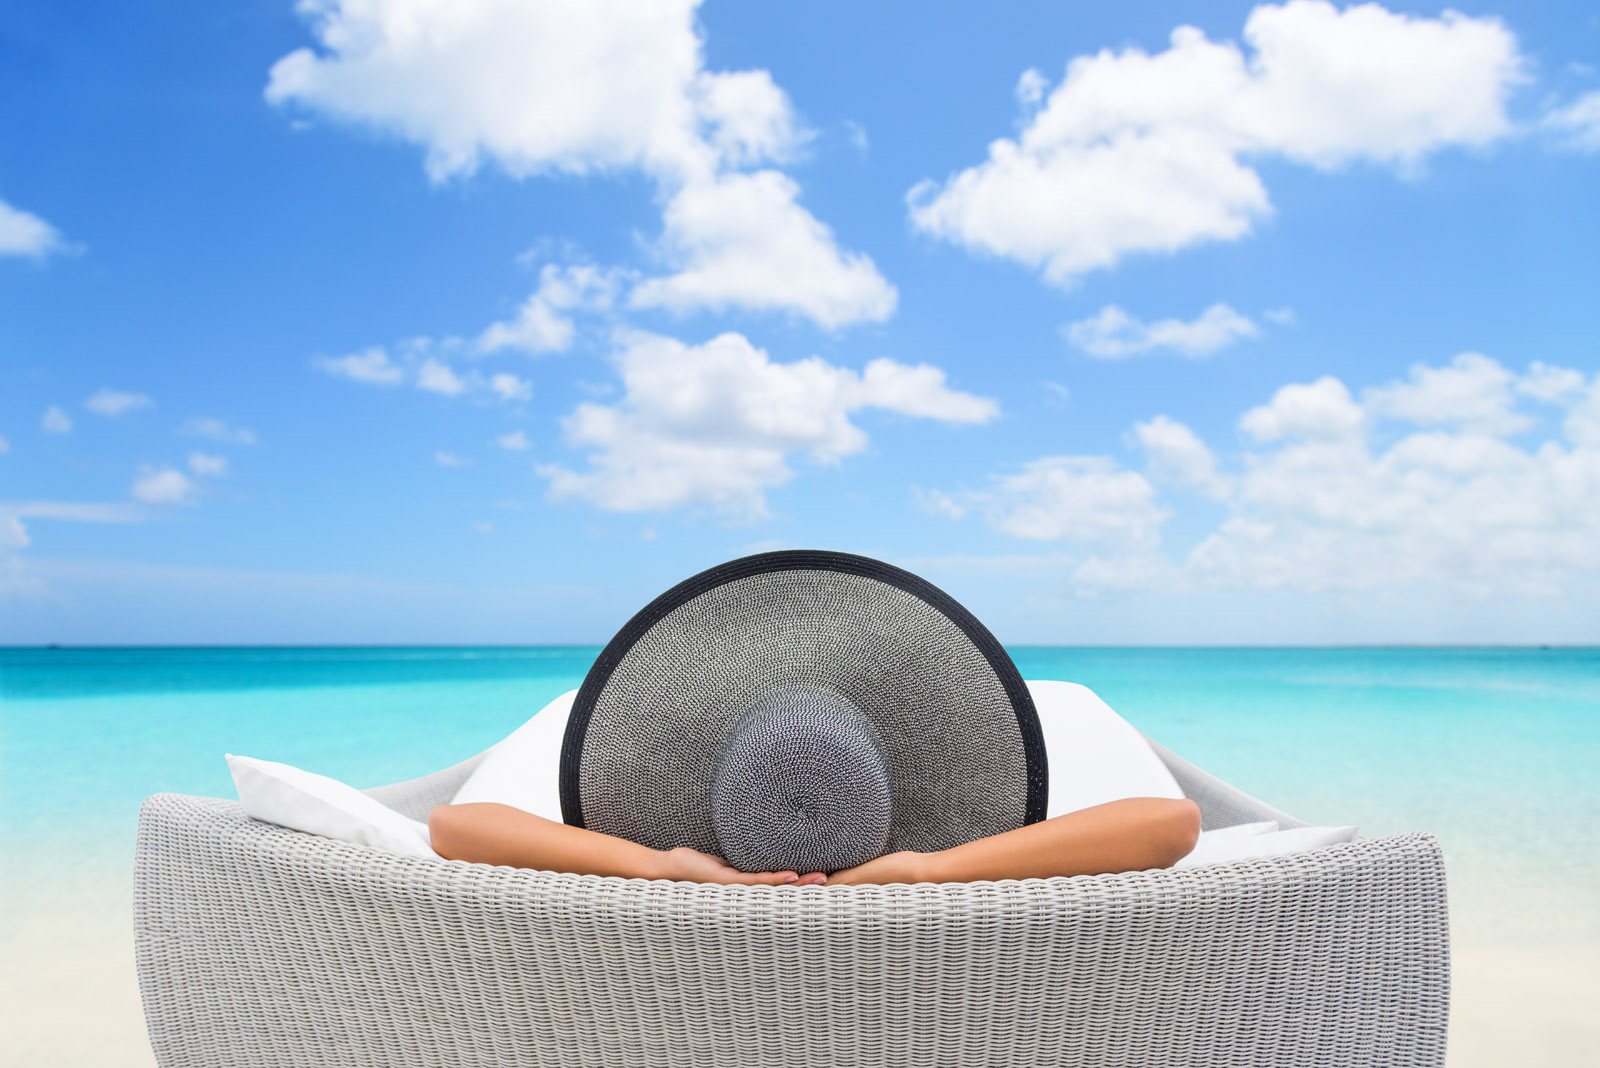 Woman relaxes in chair overlooking the ocean